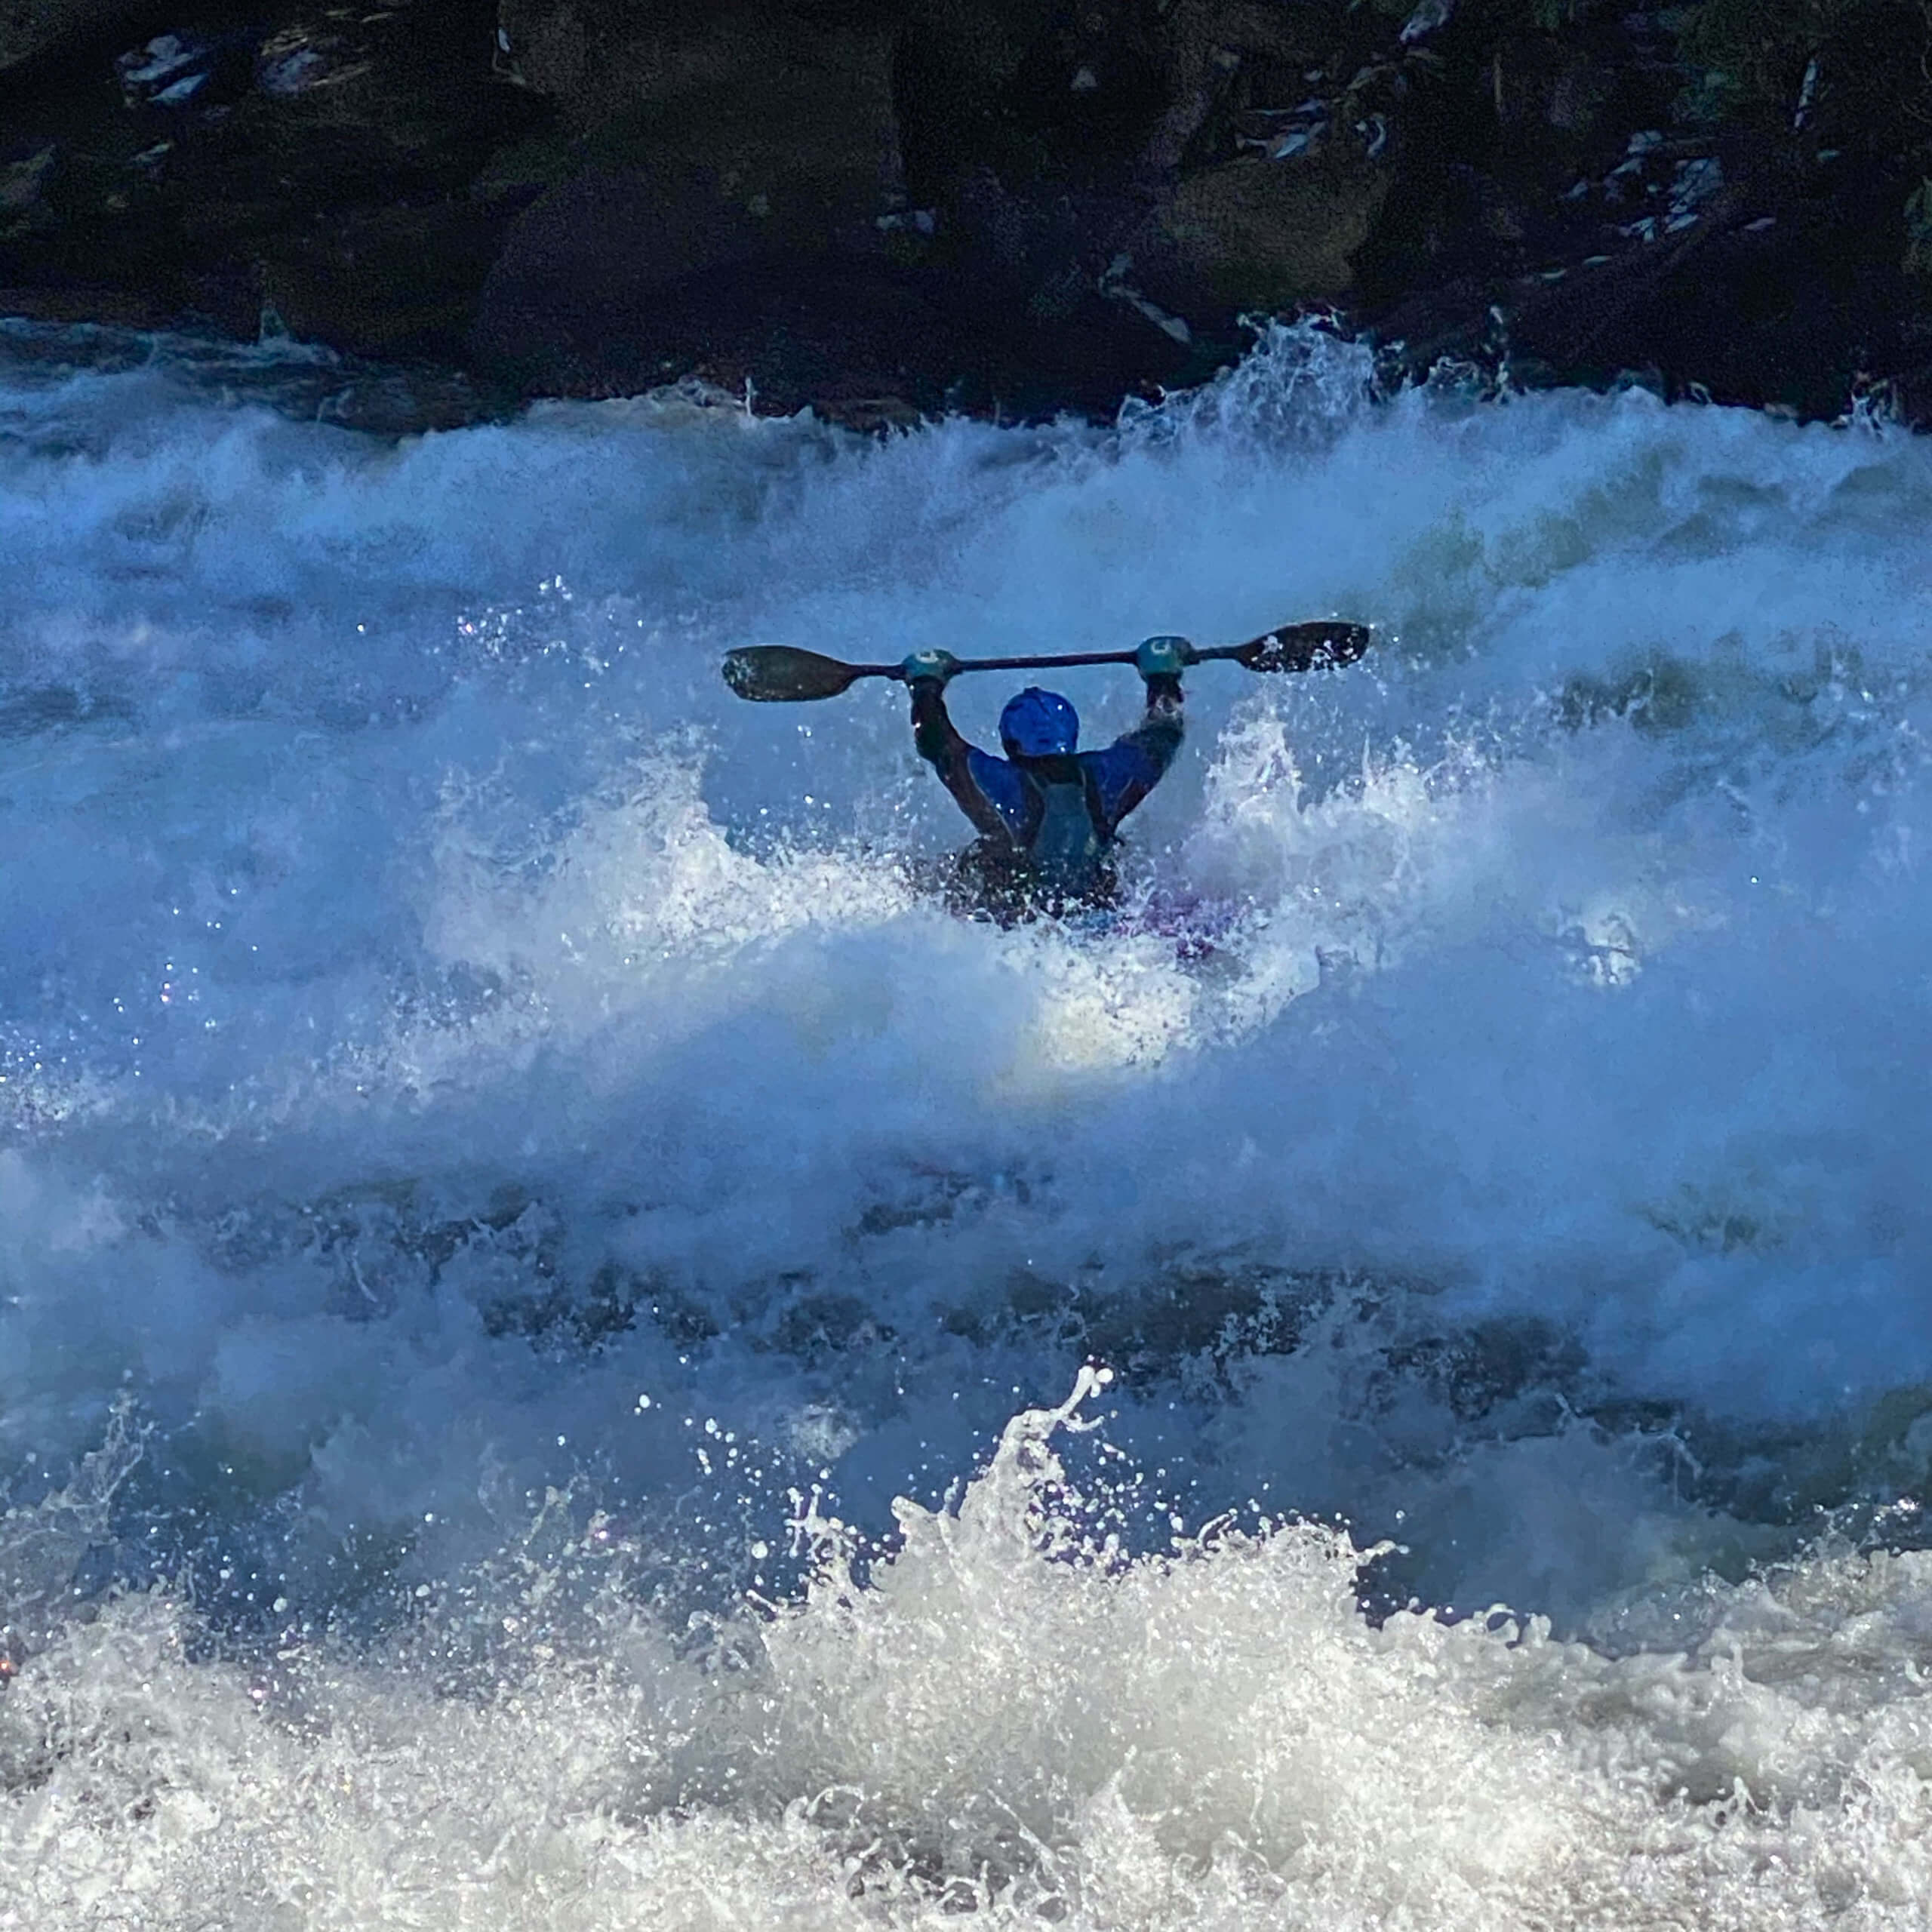 Kayaking at Swallow Falls in March 2020